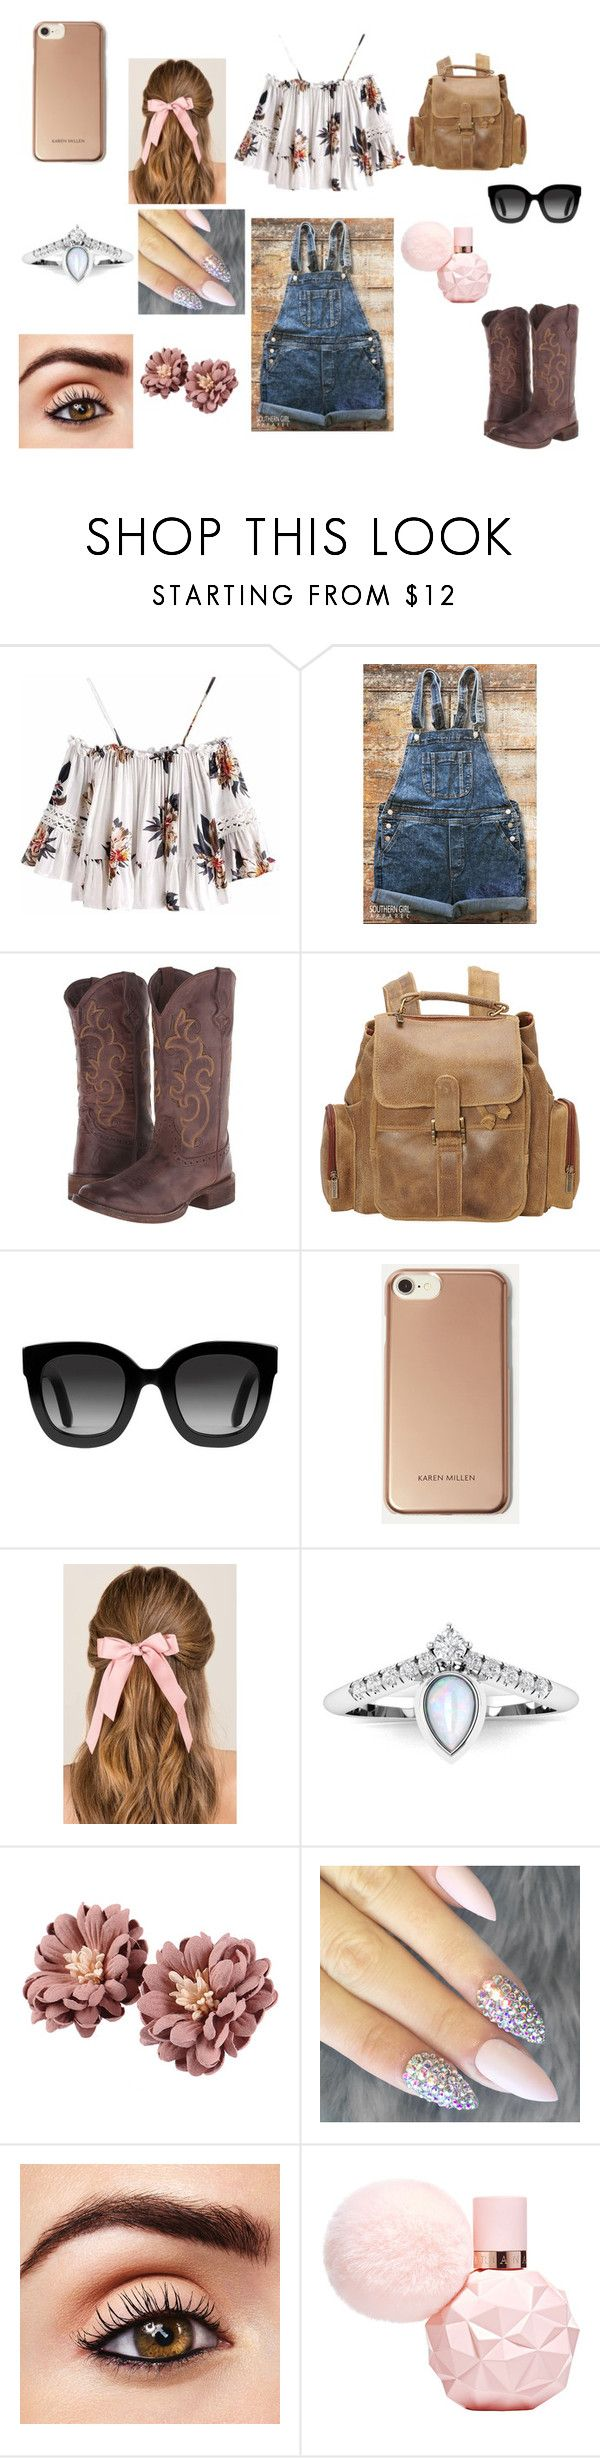 """Fair Grounds"" by paytenheine ❤ liked on Polyvore featuring Roper, Le Donne, Gucci, Karen Millen and Francesca's"